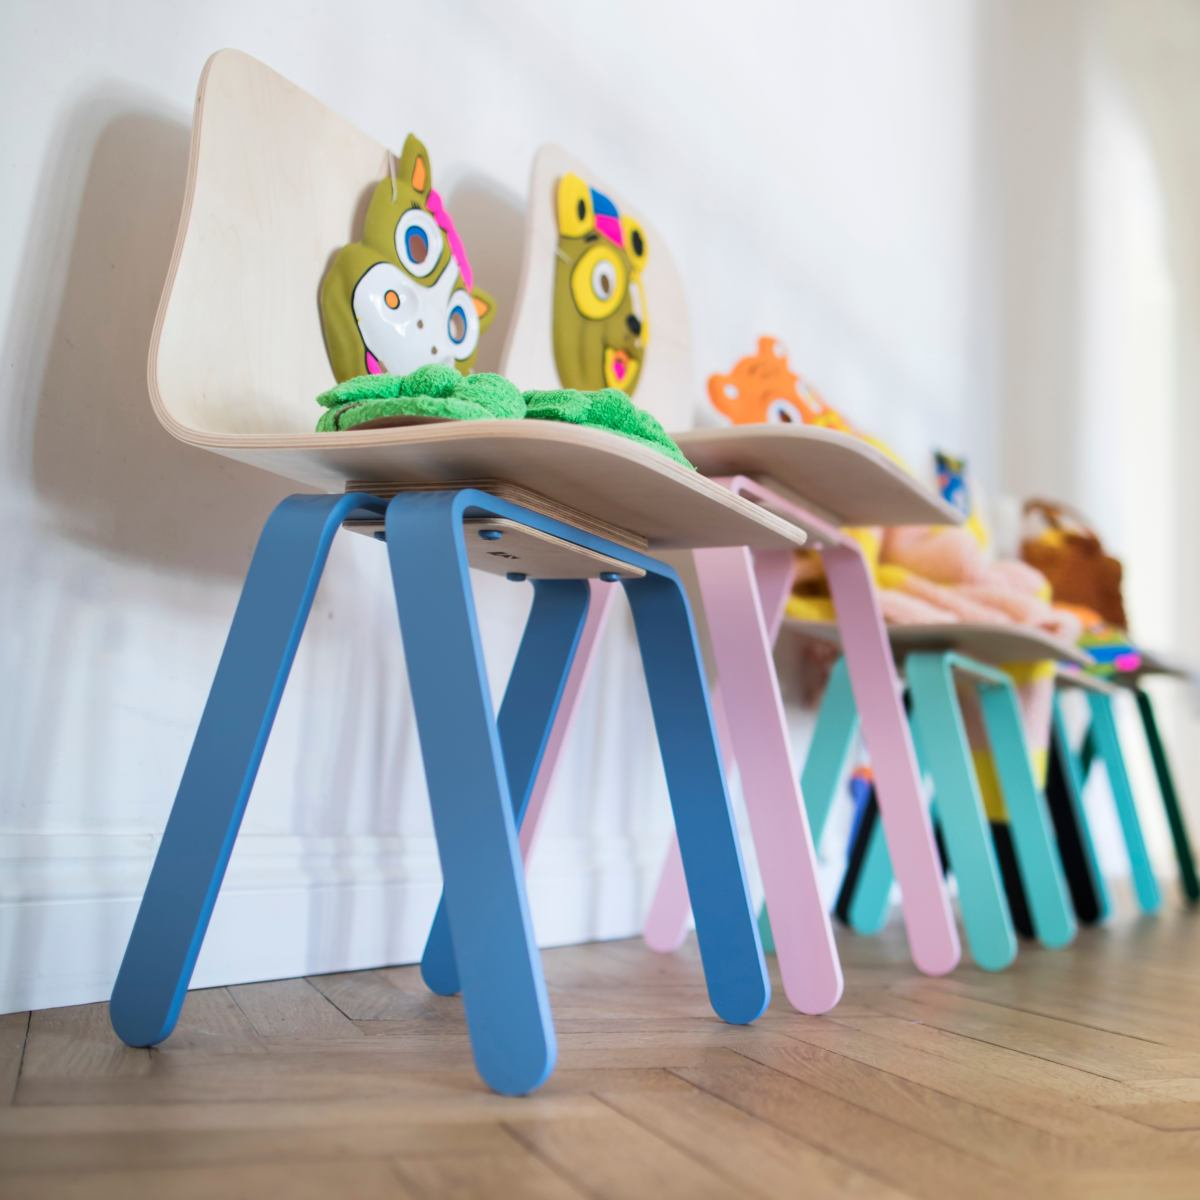 Small oldschool children's chair for ages 2 to 6